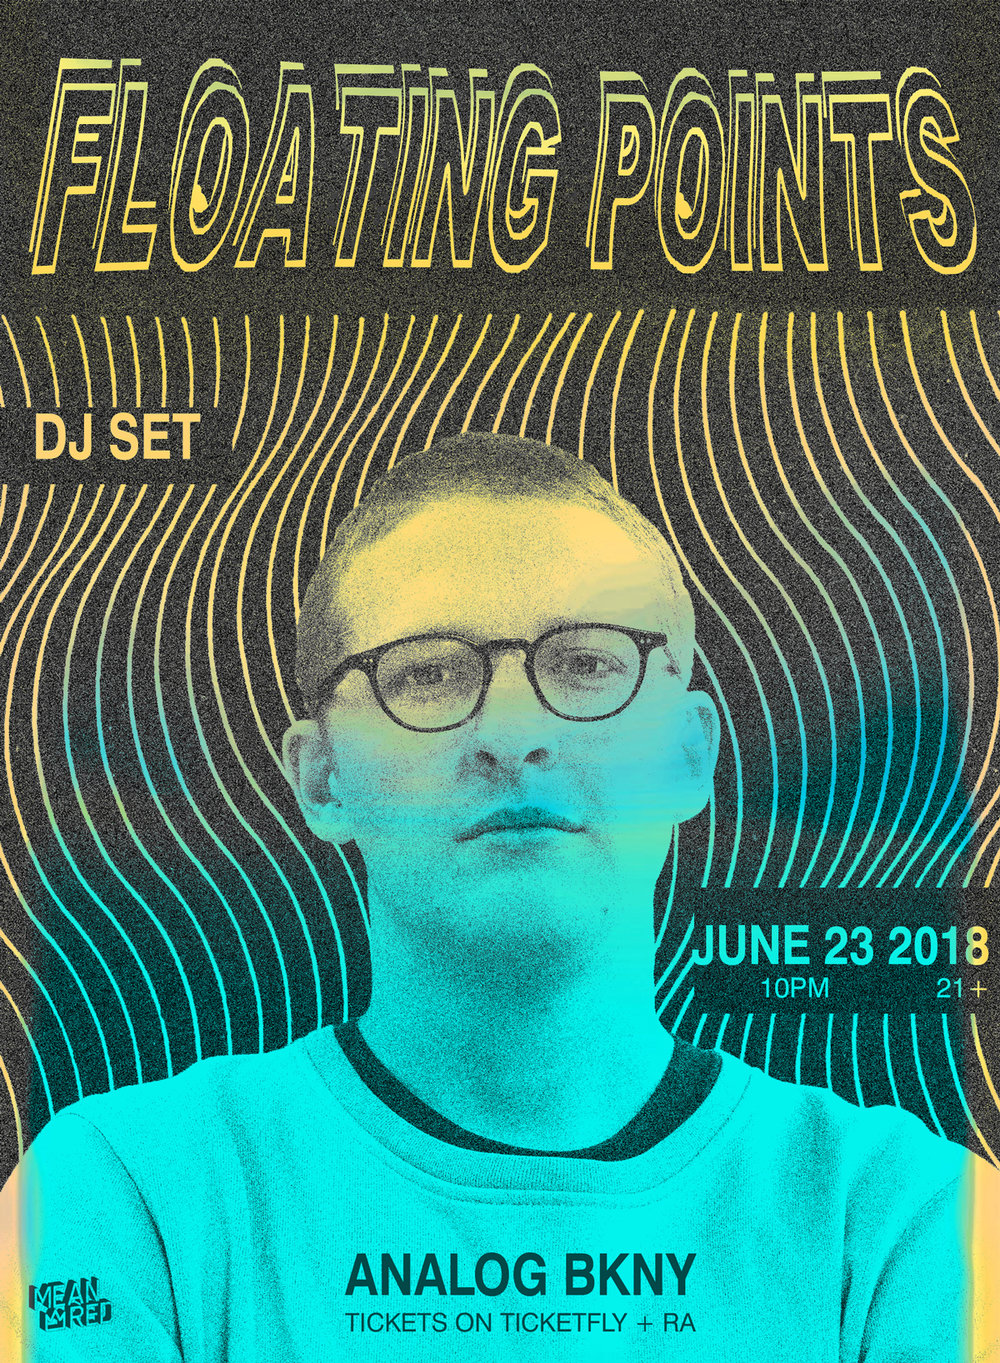 062318_Floating-Points_Flyer.jpg